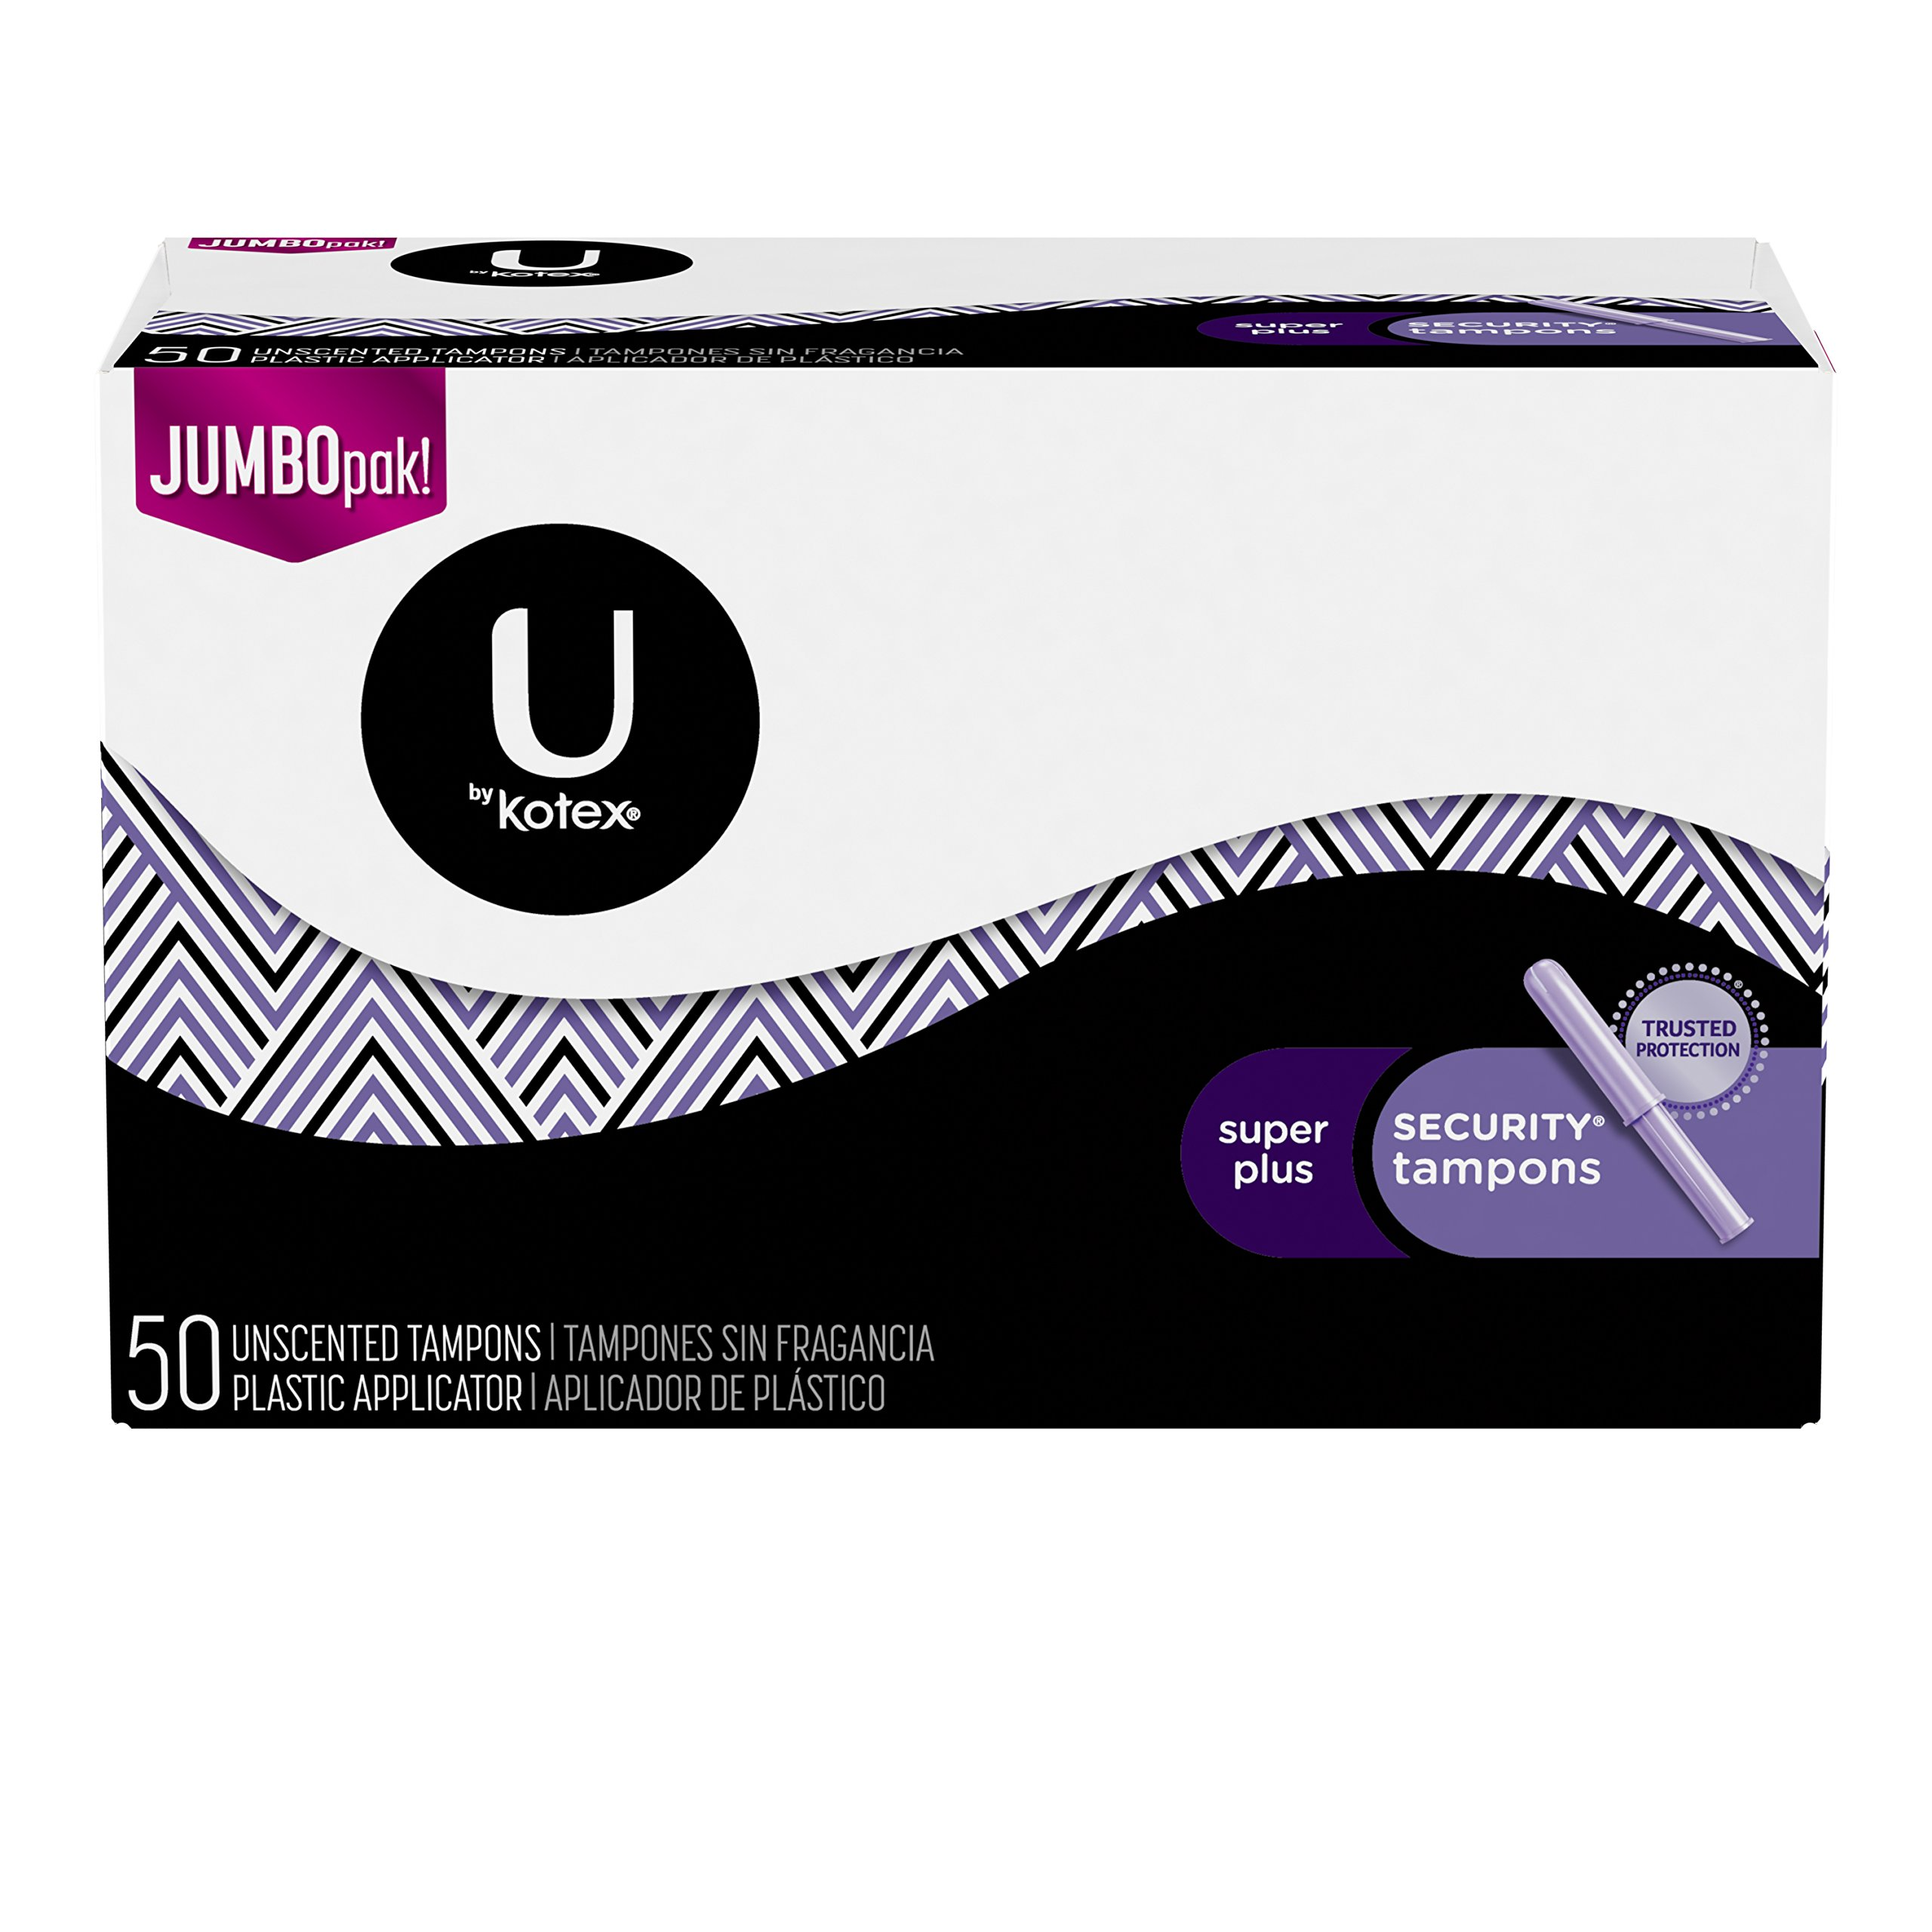 U by Kotex Security Tampons, Super Plus Absorbency, Unscented, 3 Packs of 50 Count